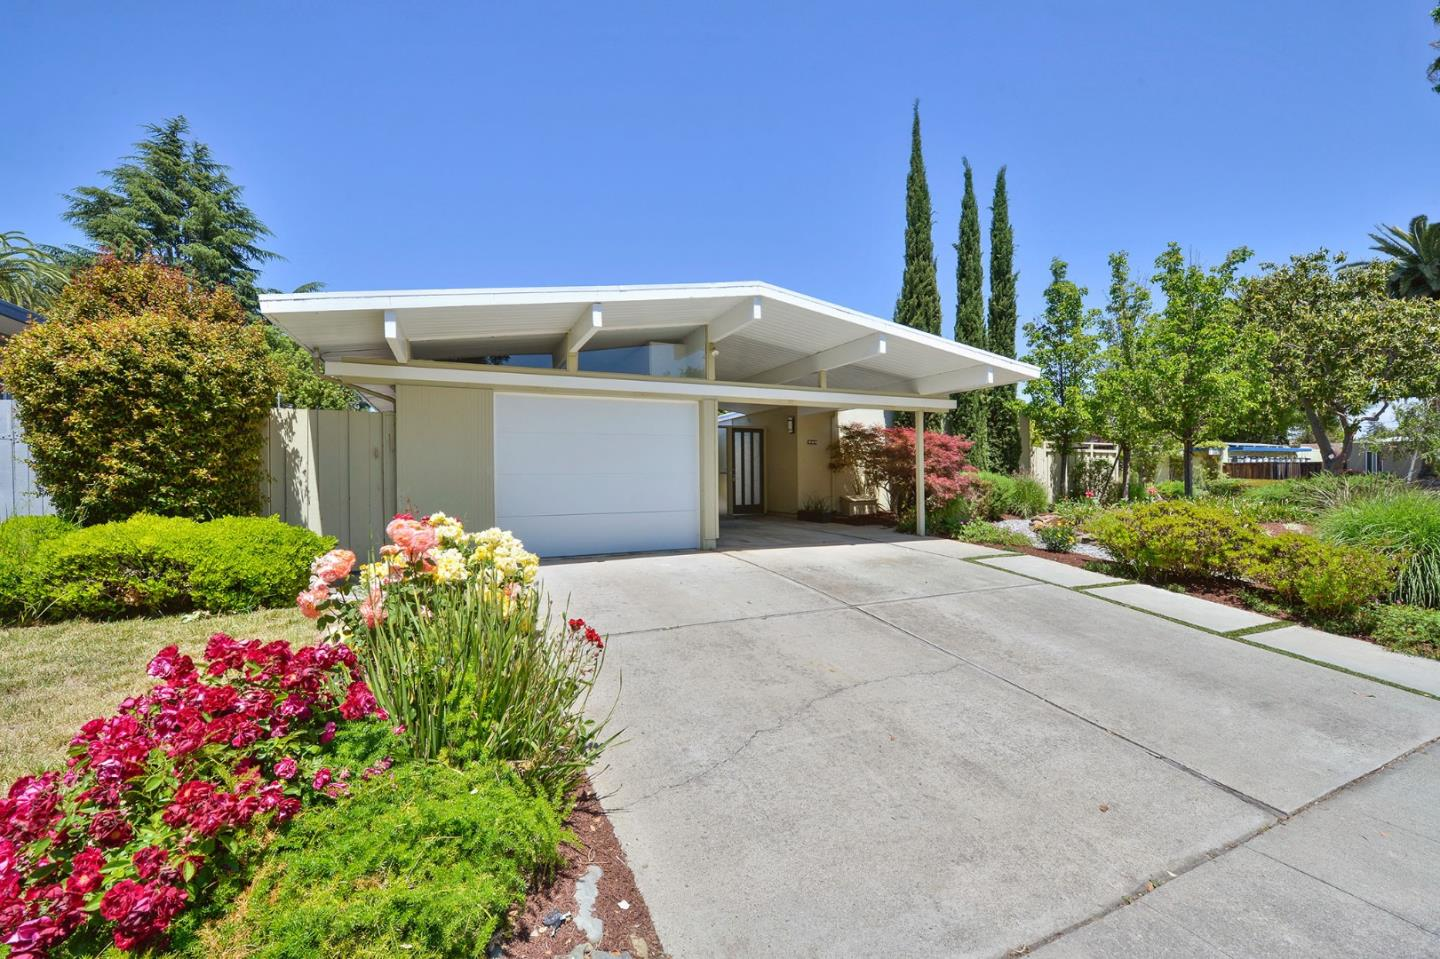 Detail Gallery Image 1 of 1 For 585 Templeton Dr, Sunnyvale, CA 94087 - 4 Beds | 2 Baths